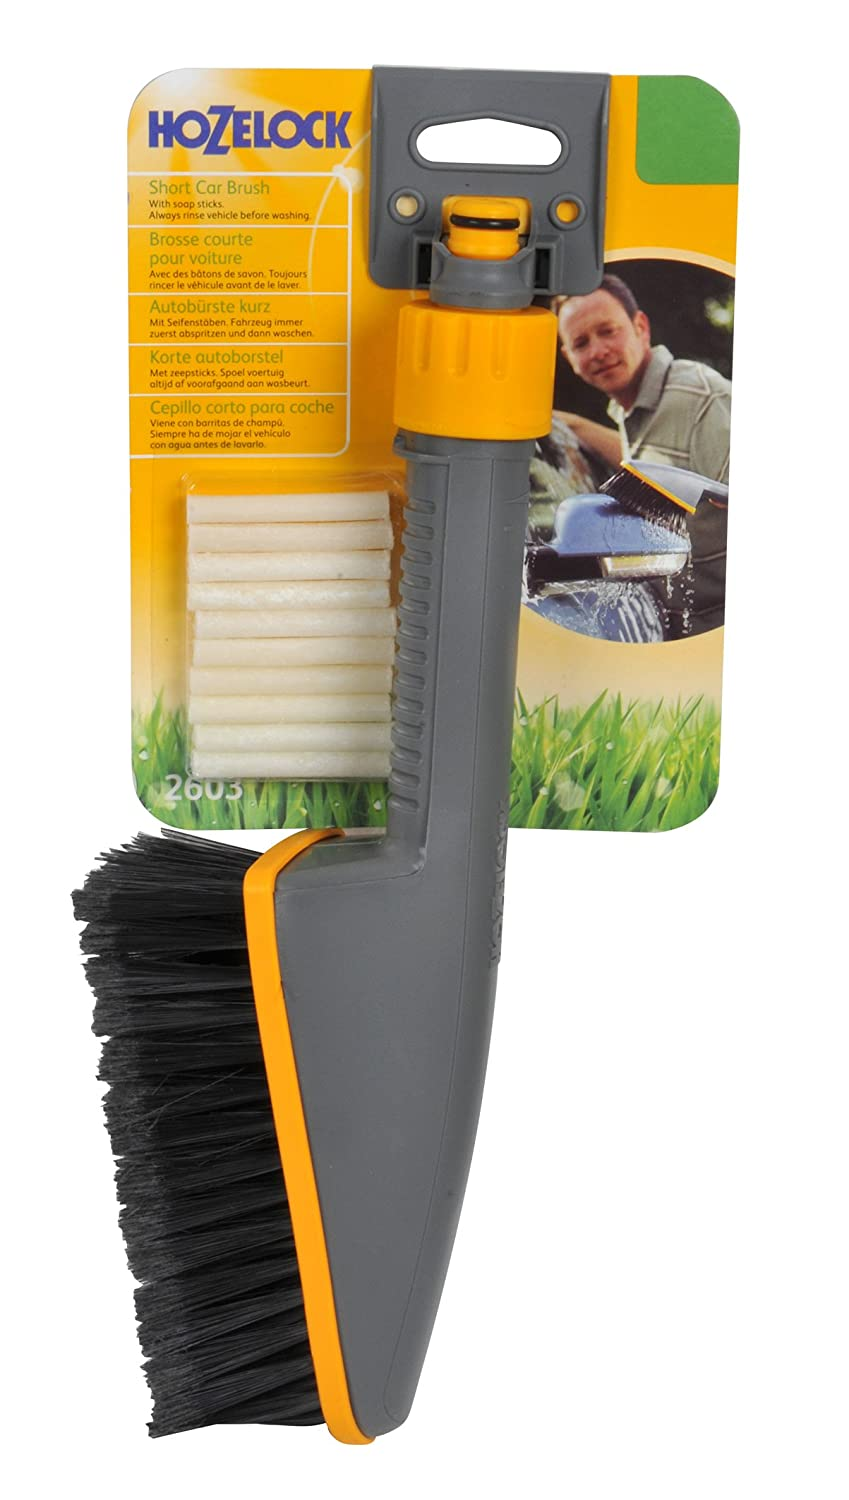 Hozelock Short Car Brush with Soapsticks